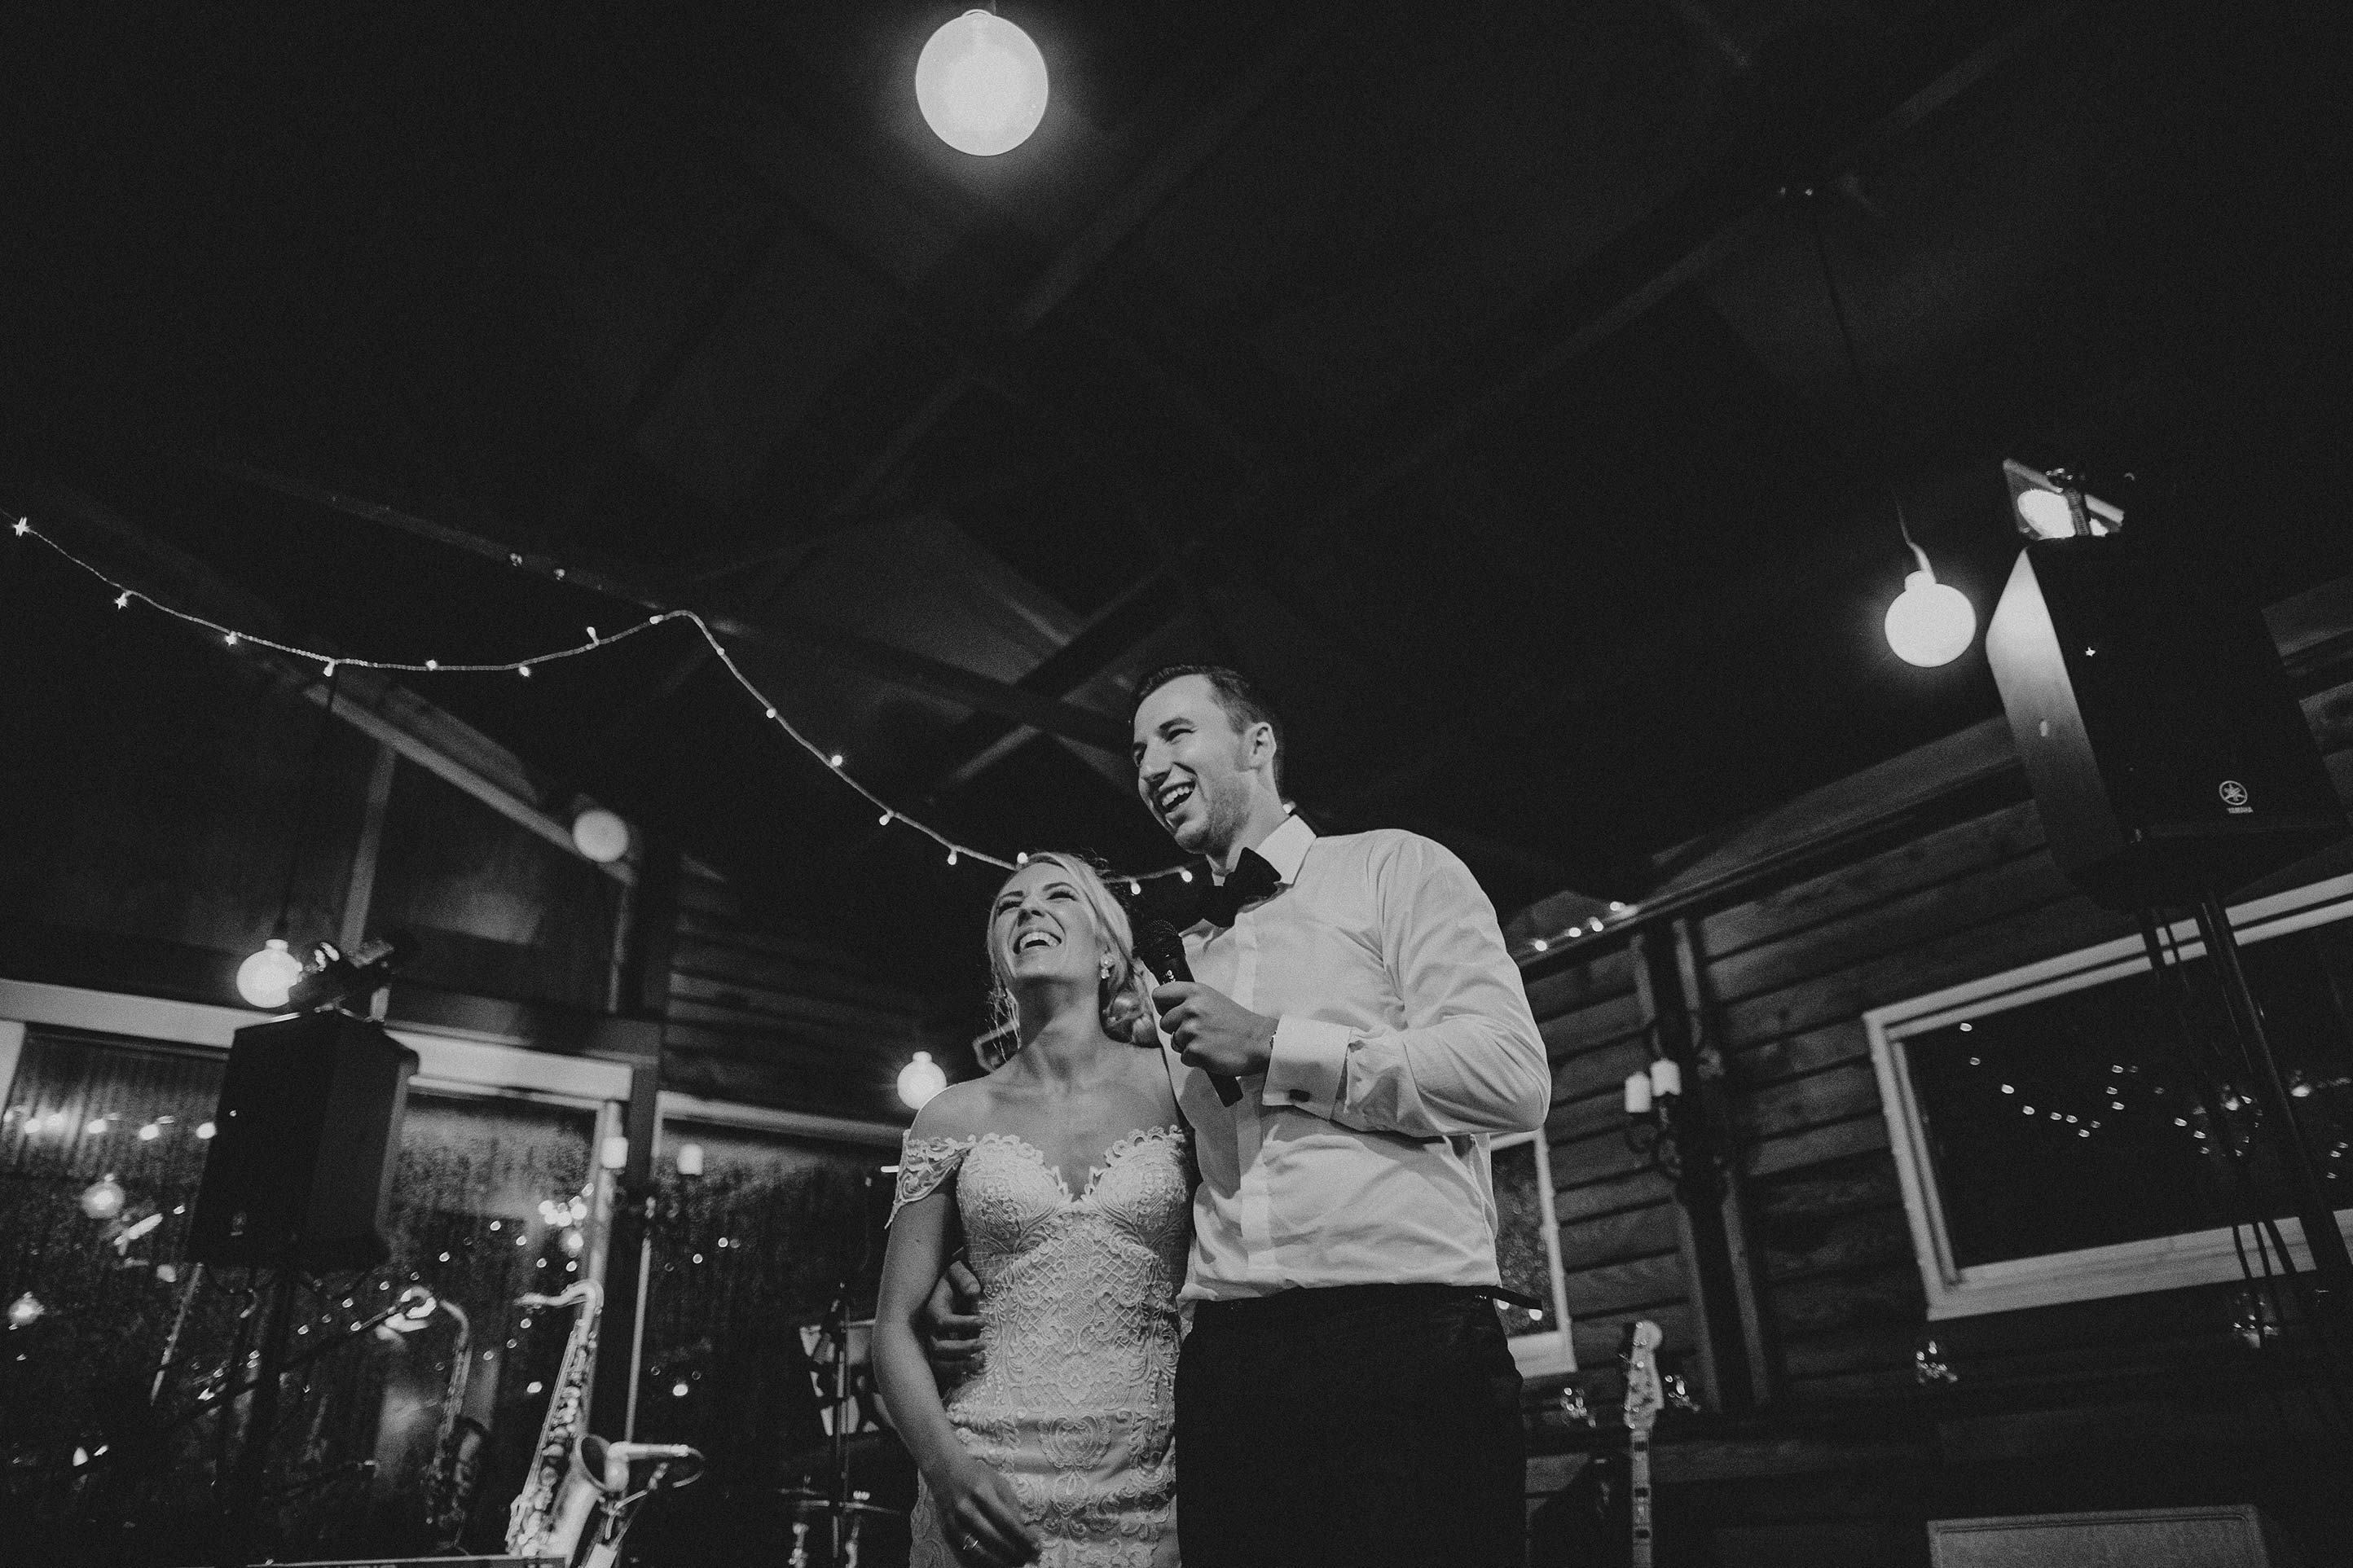 melbourne-yarra-zonzo-wedding-bride-groom-speech